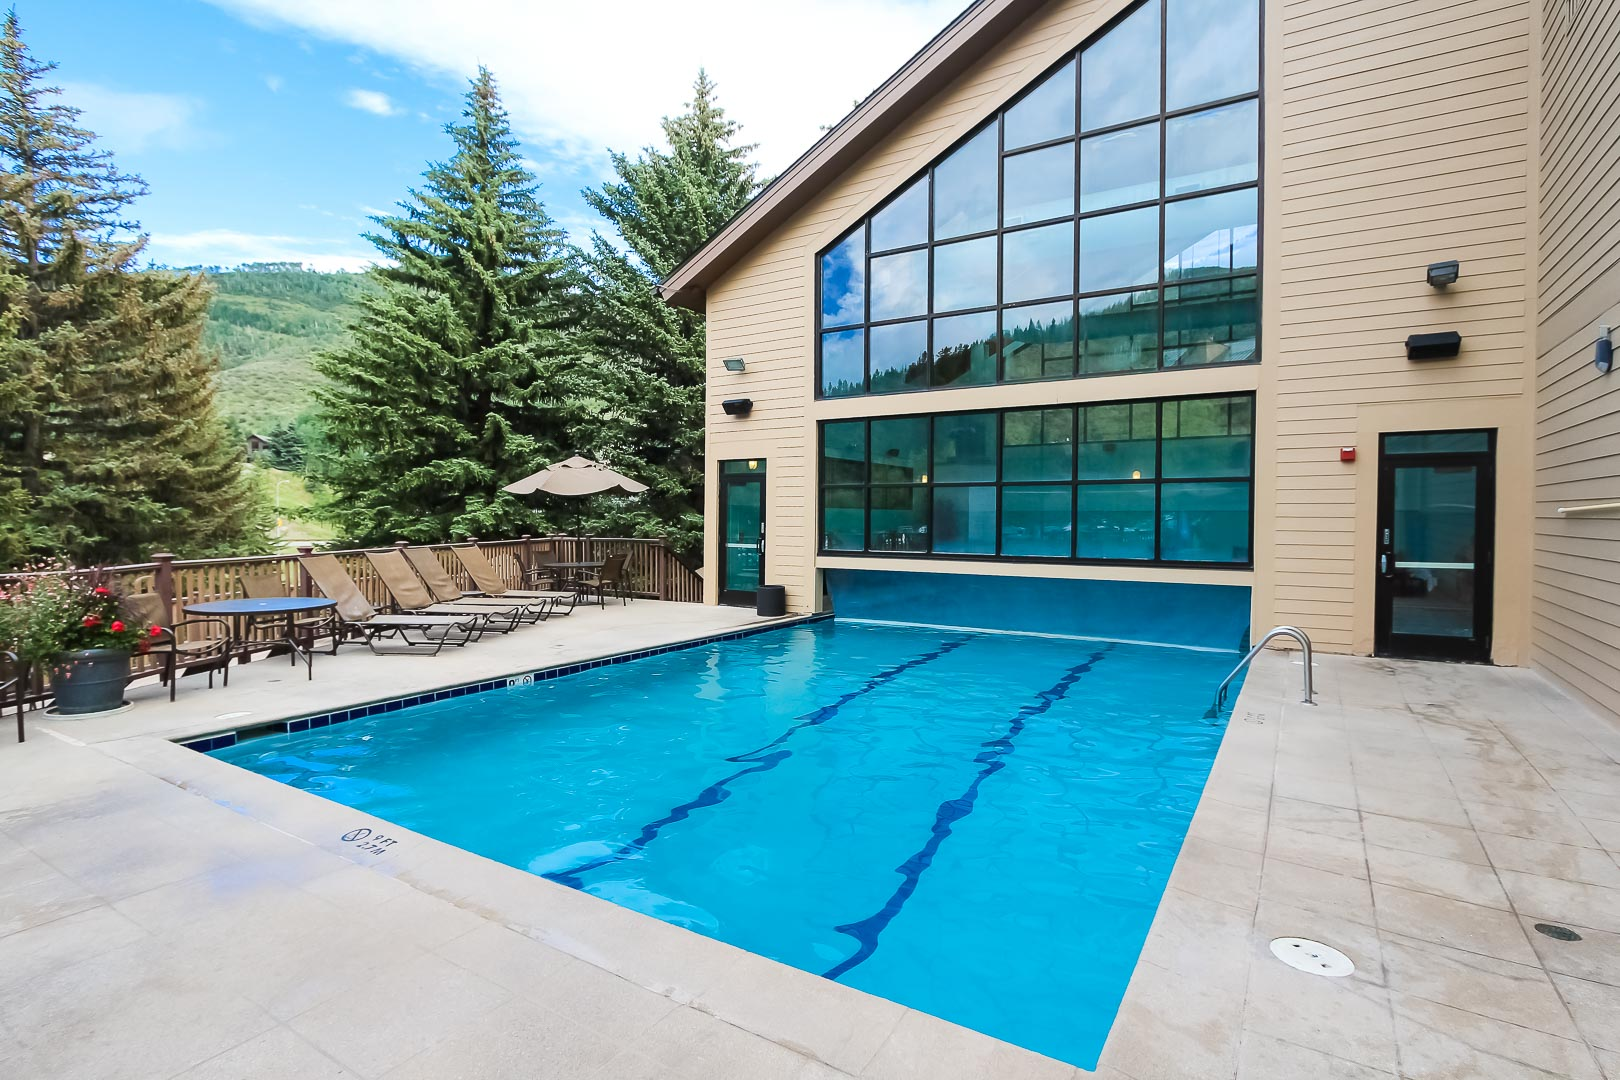 A peaceful outdoor swimming pool with a view at VRI's Cedar at Streamside in Colorado.